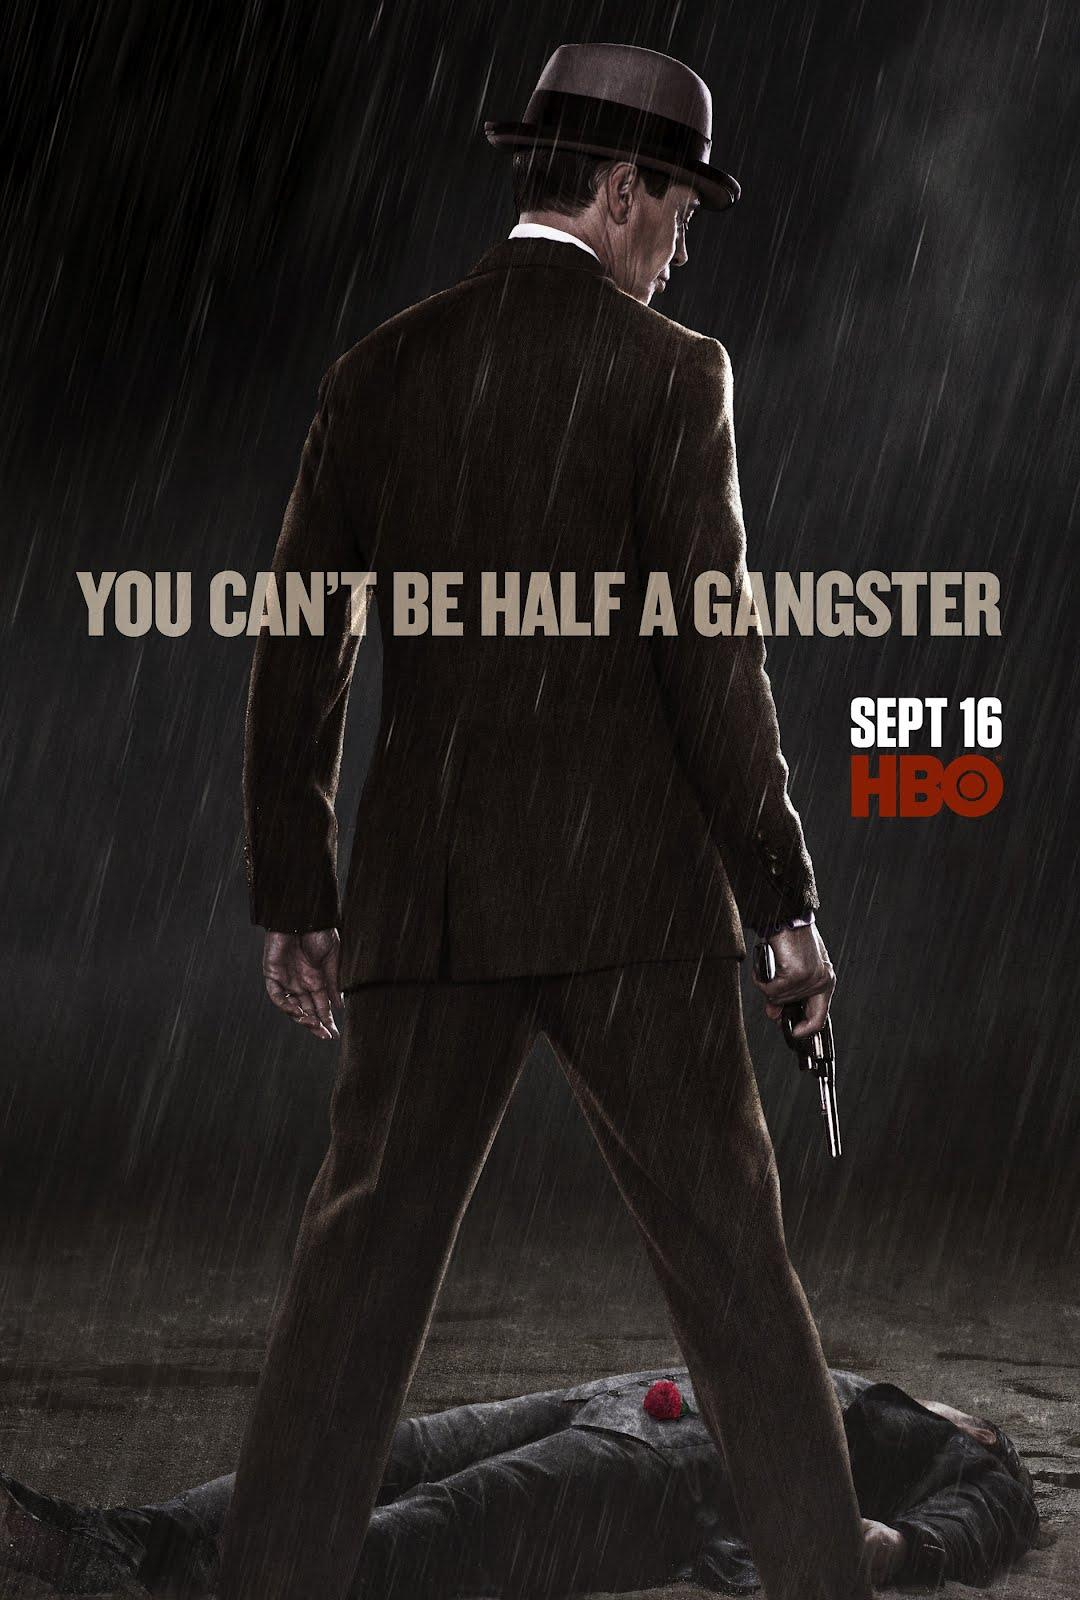 Boardwalk Empire saison 3 - Un affiche pour la saison 3 de Boardwalk Empire (MàJ)